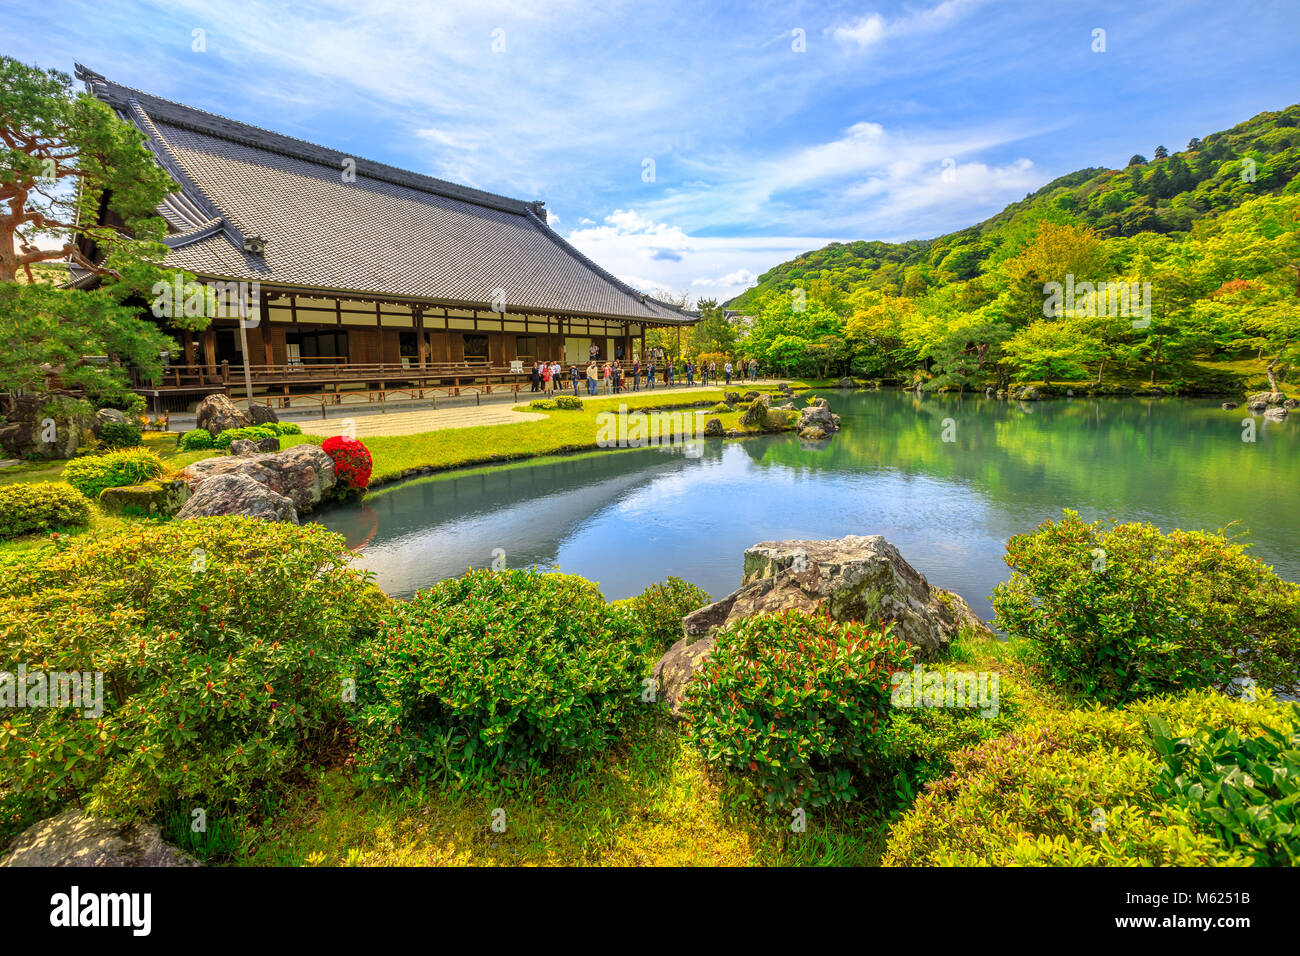 Kyoto, Japan - April 27, 2017: Hojo Hall and picturesque Sogen Garden or Sogenchi Teien with a circular promenade - Stock Image